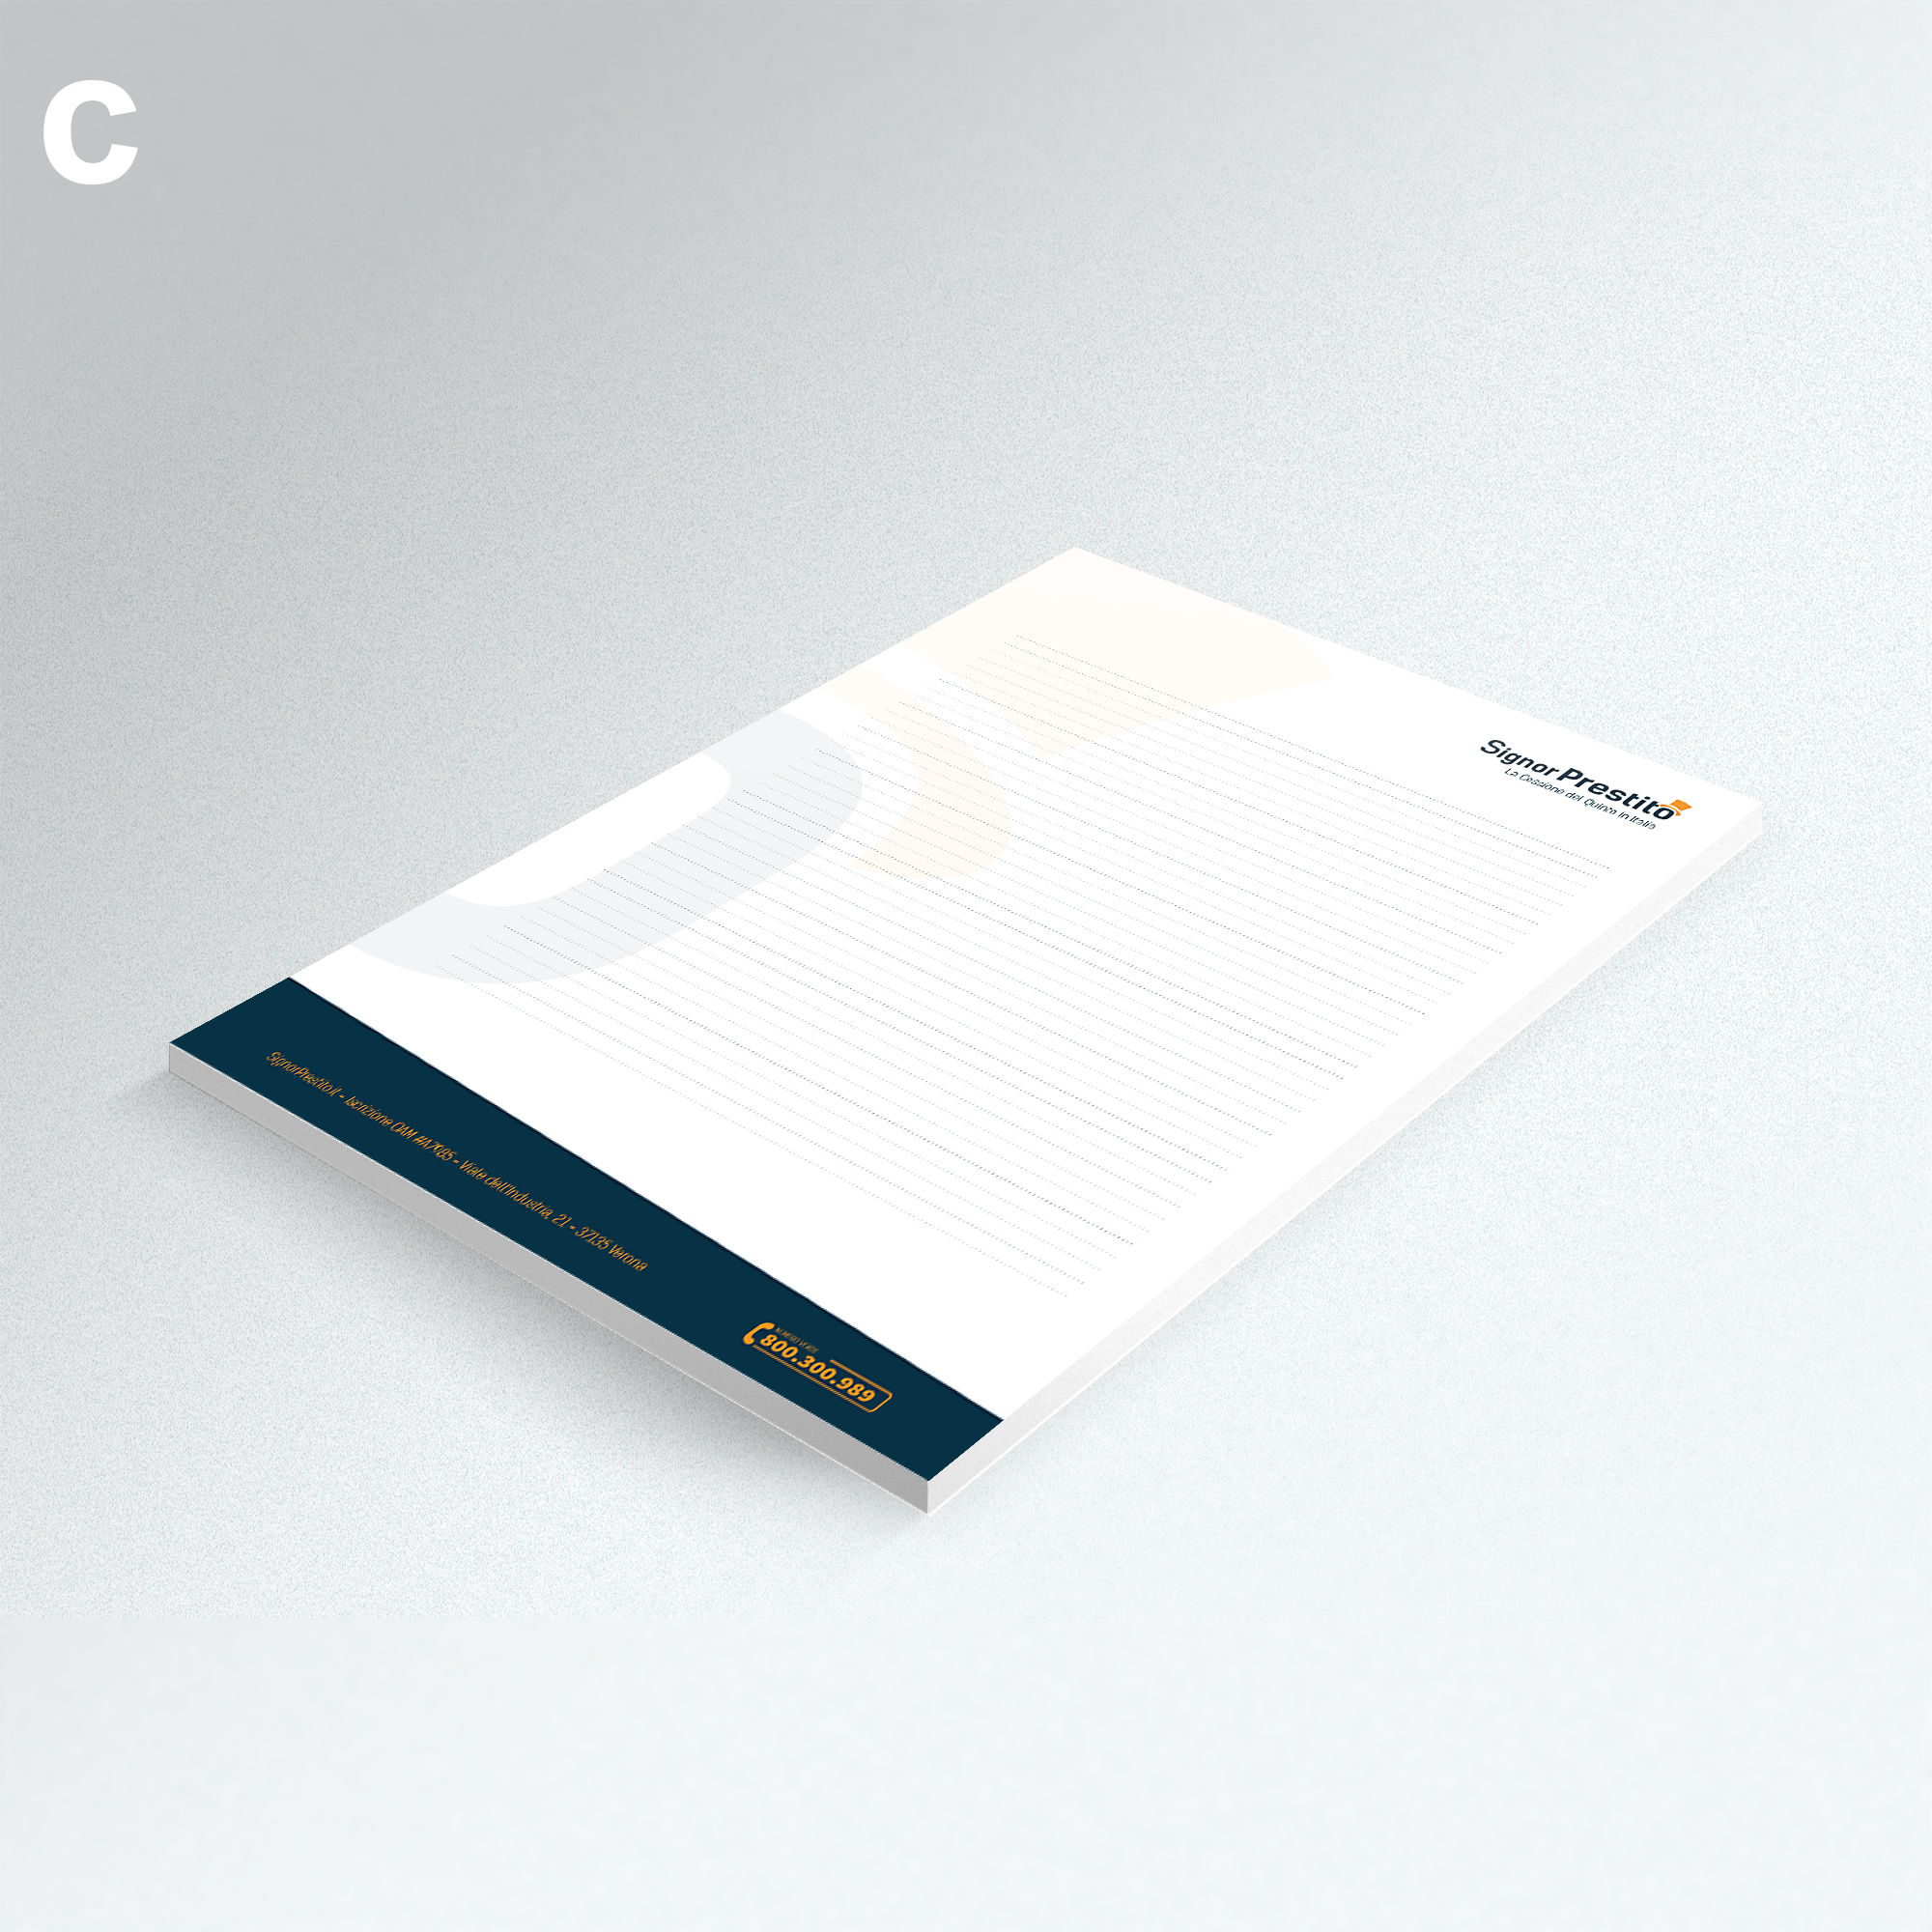 business card design signor prestito